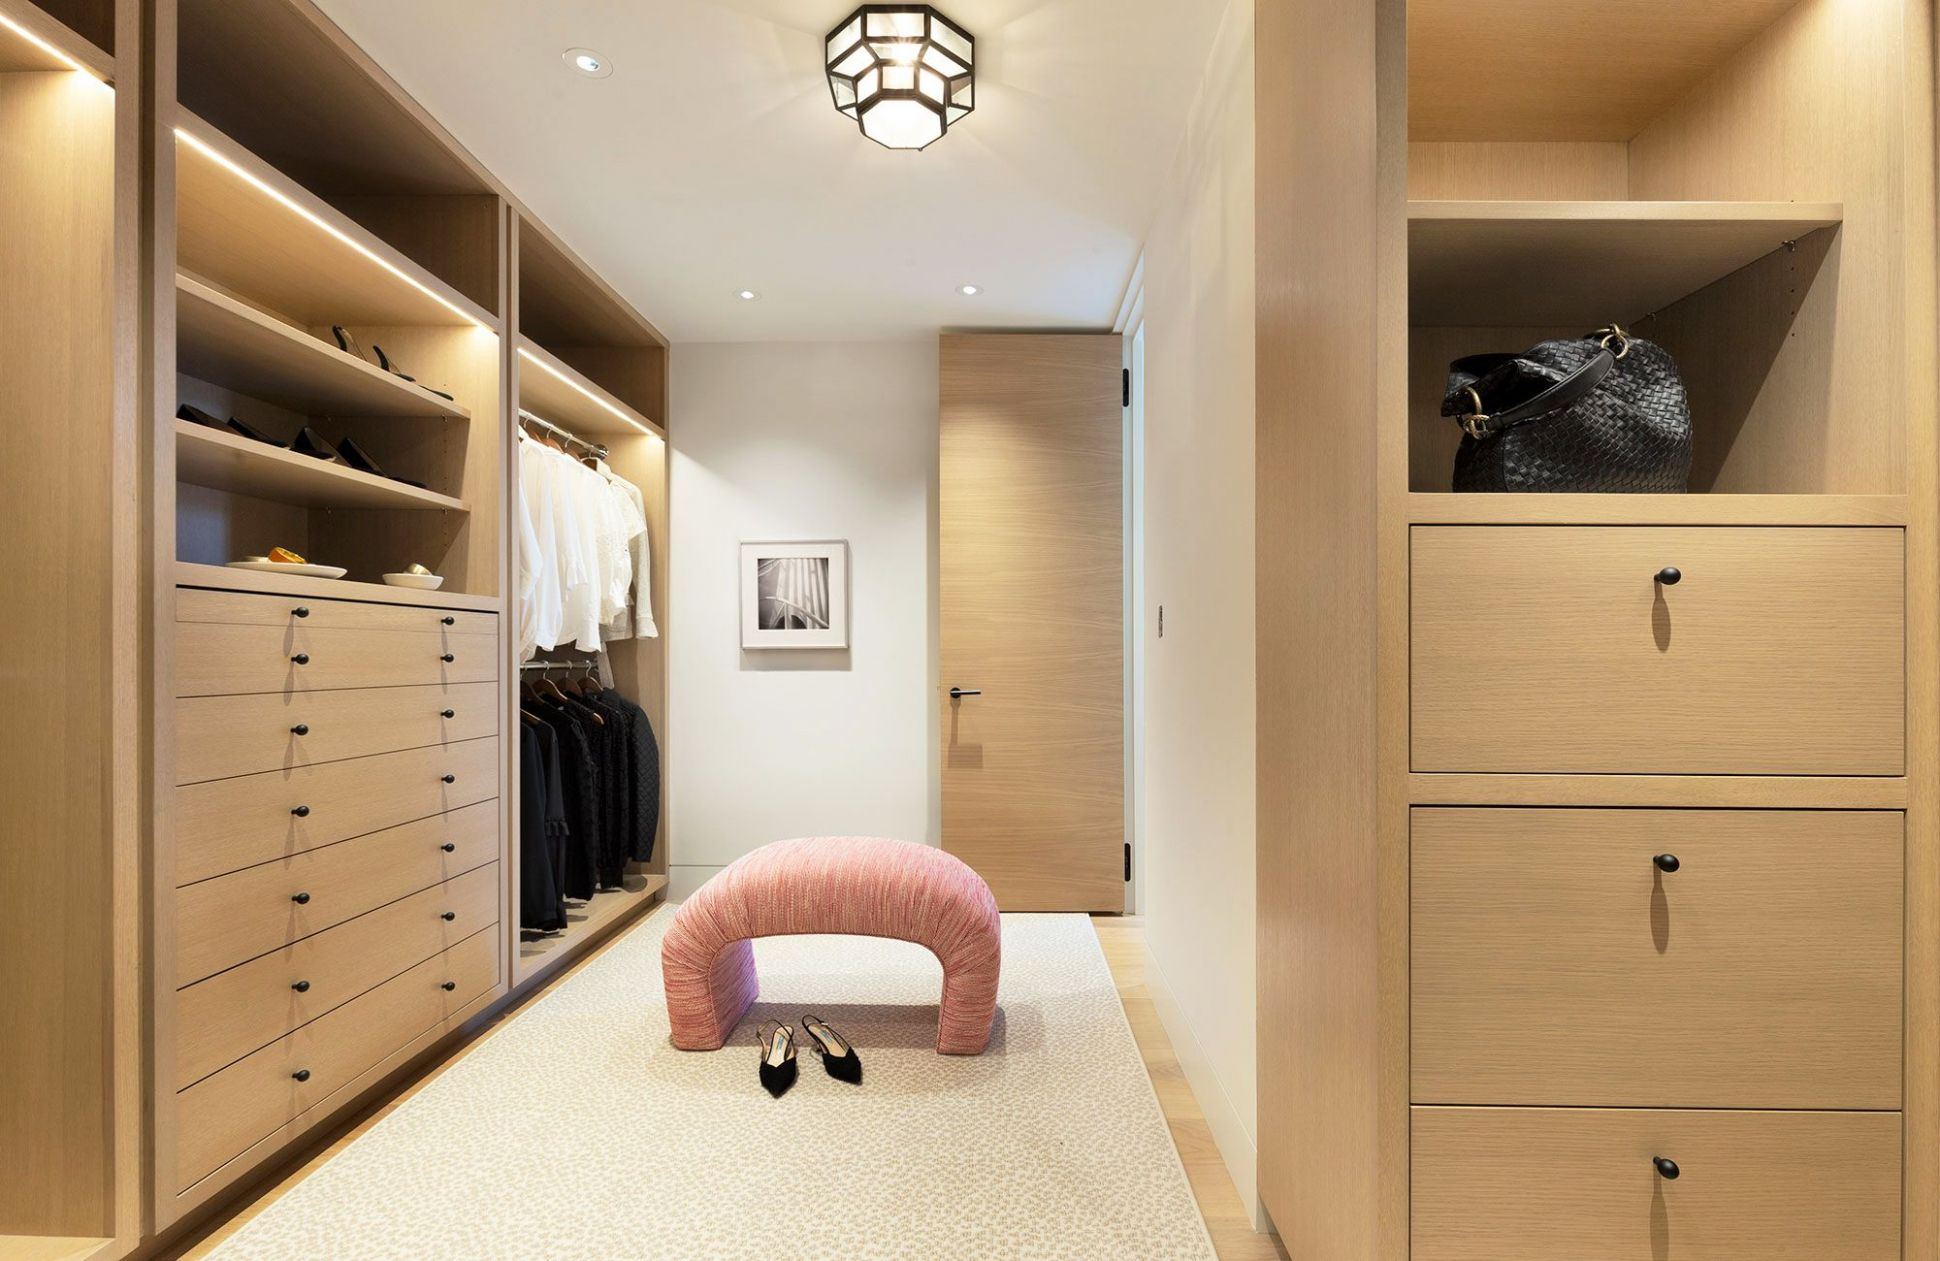 8 Best Walk In Closet Storage Ideas and Designs for Master Bedrooms - house inspiration wardrobe